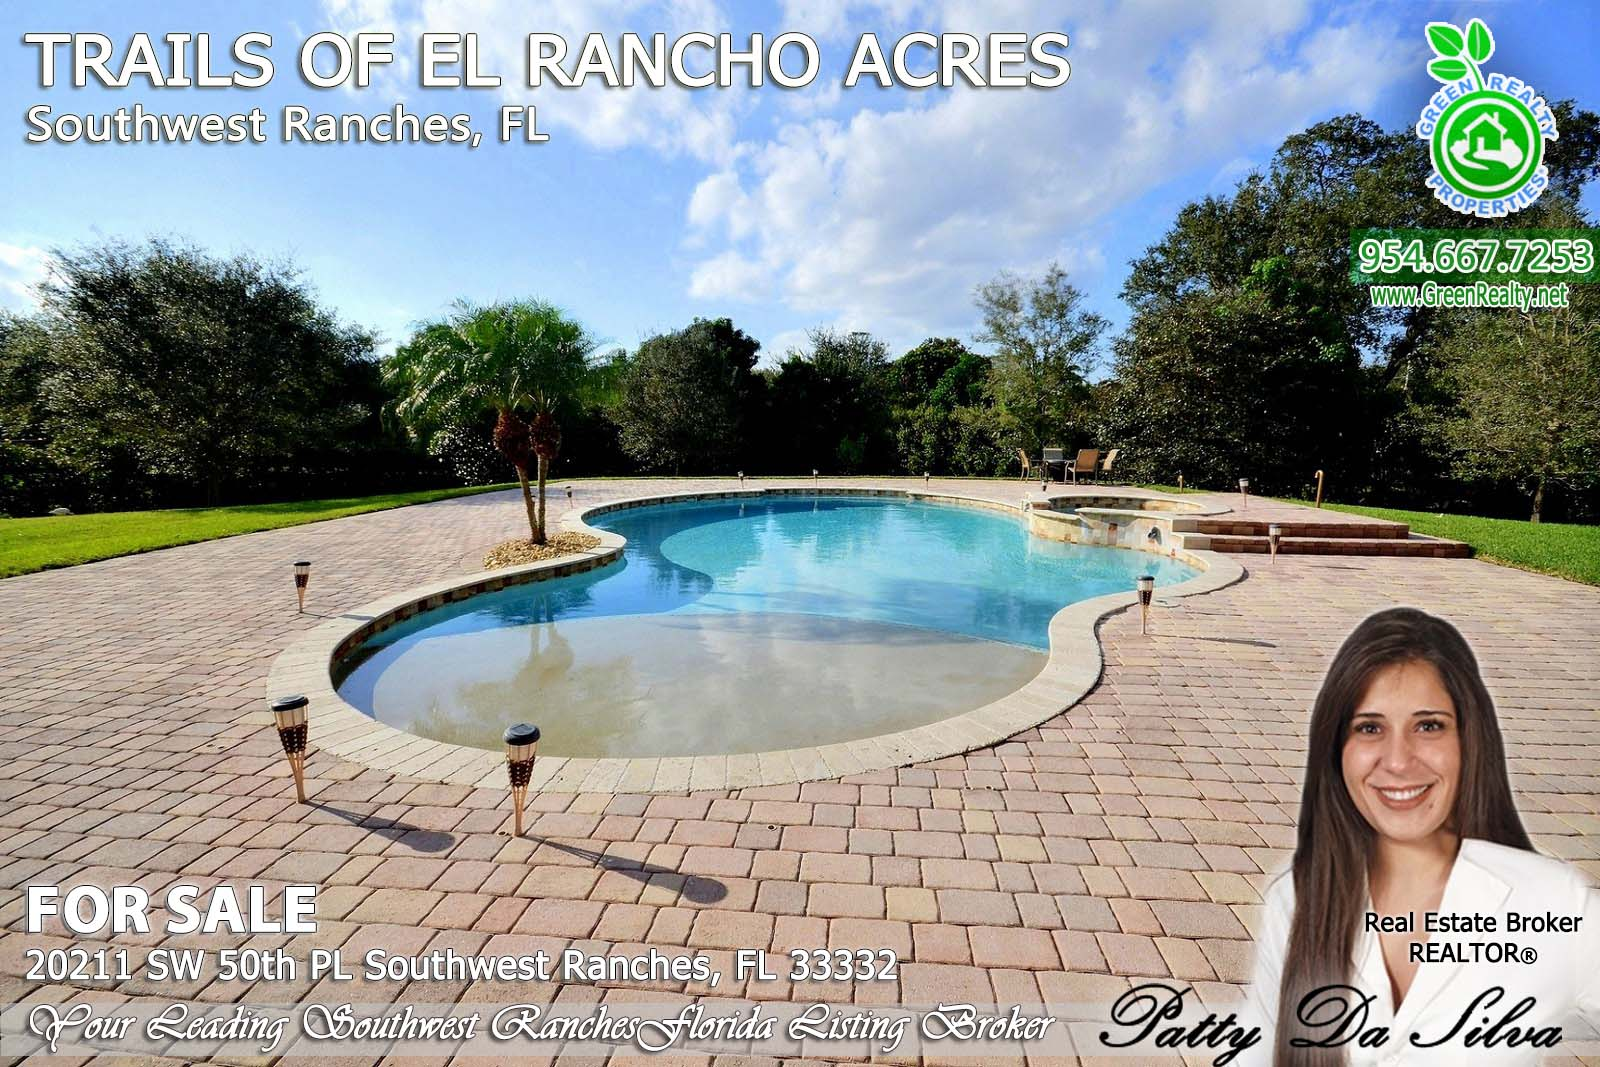 20211 SW 50th PL, Southwest Ranches, FL 33332 (57)